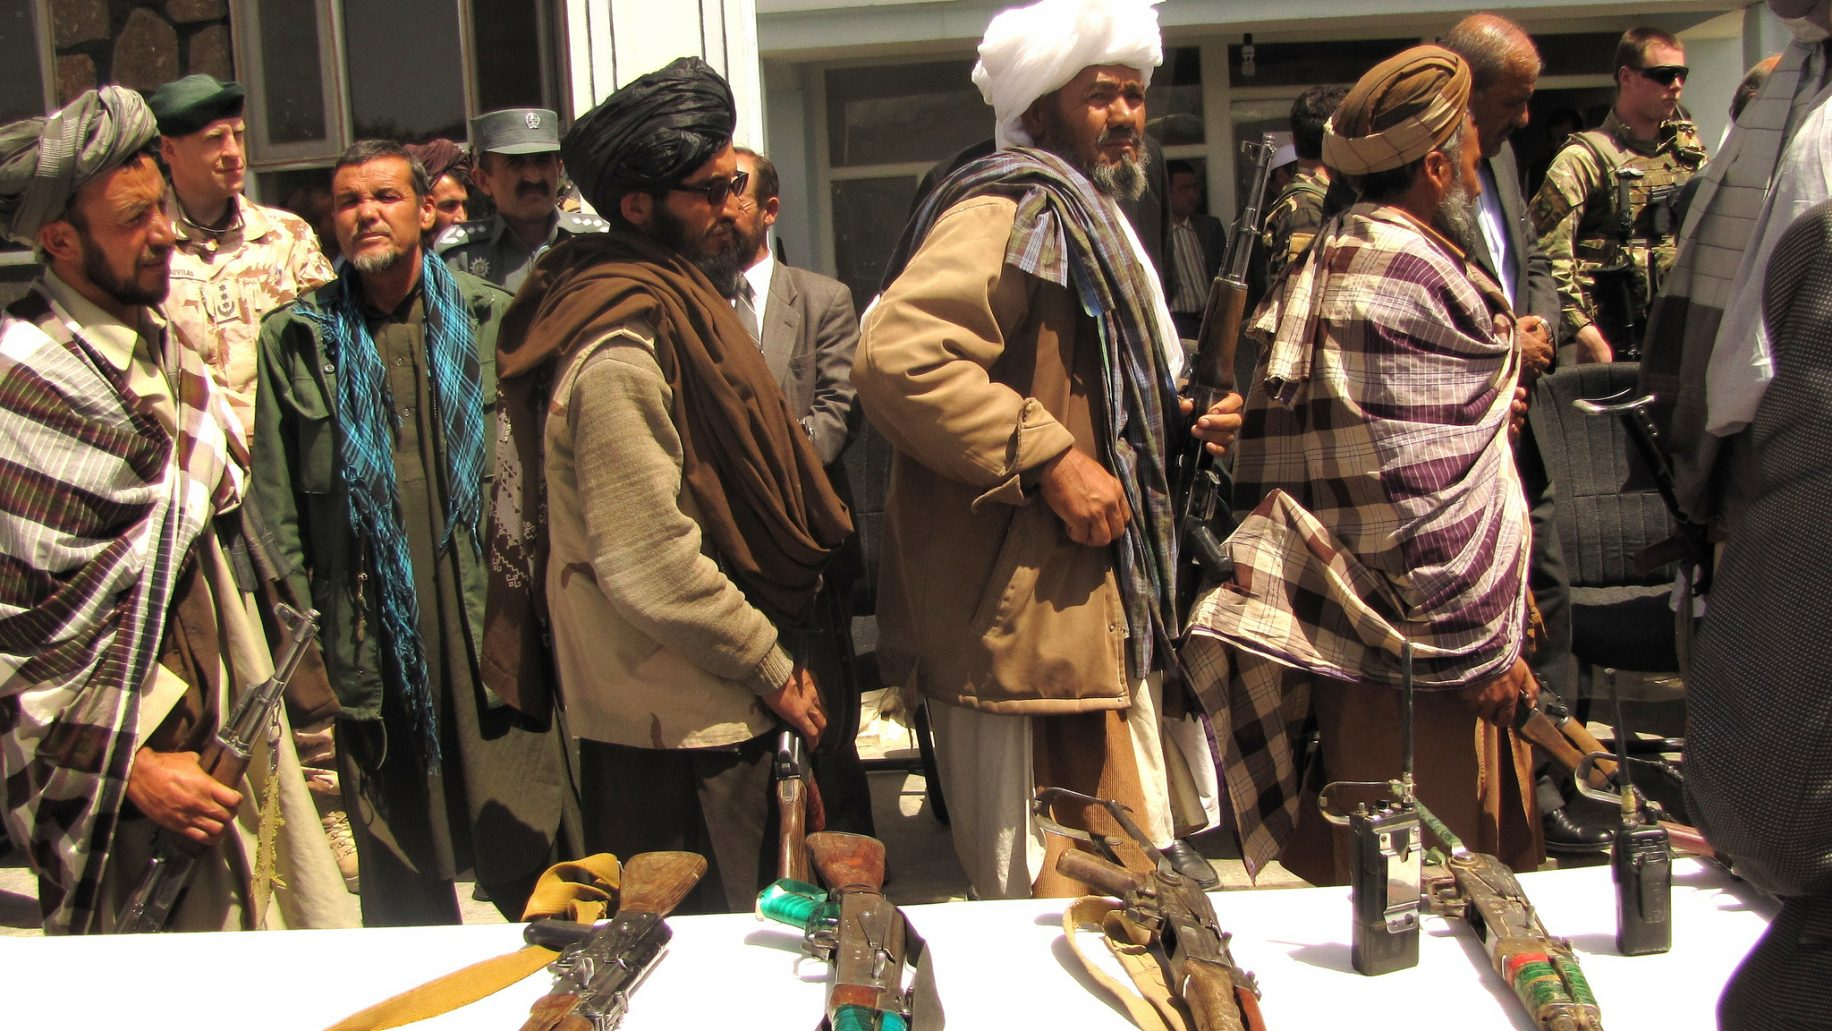 Taliban's #2 writes New York Times op-ed claiming group is cautiously committed to peace